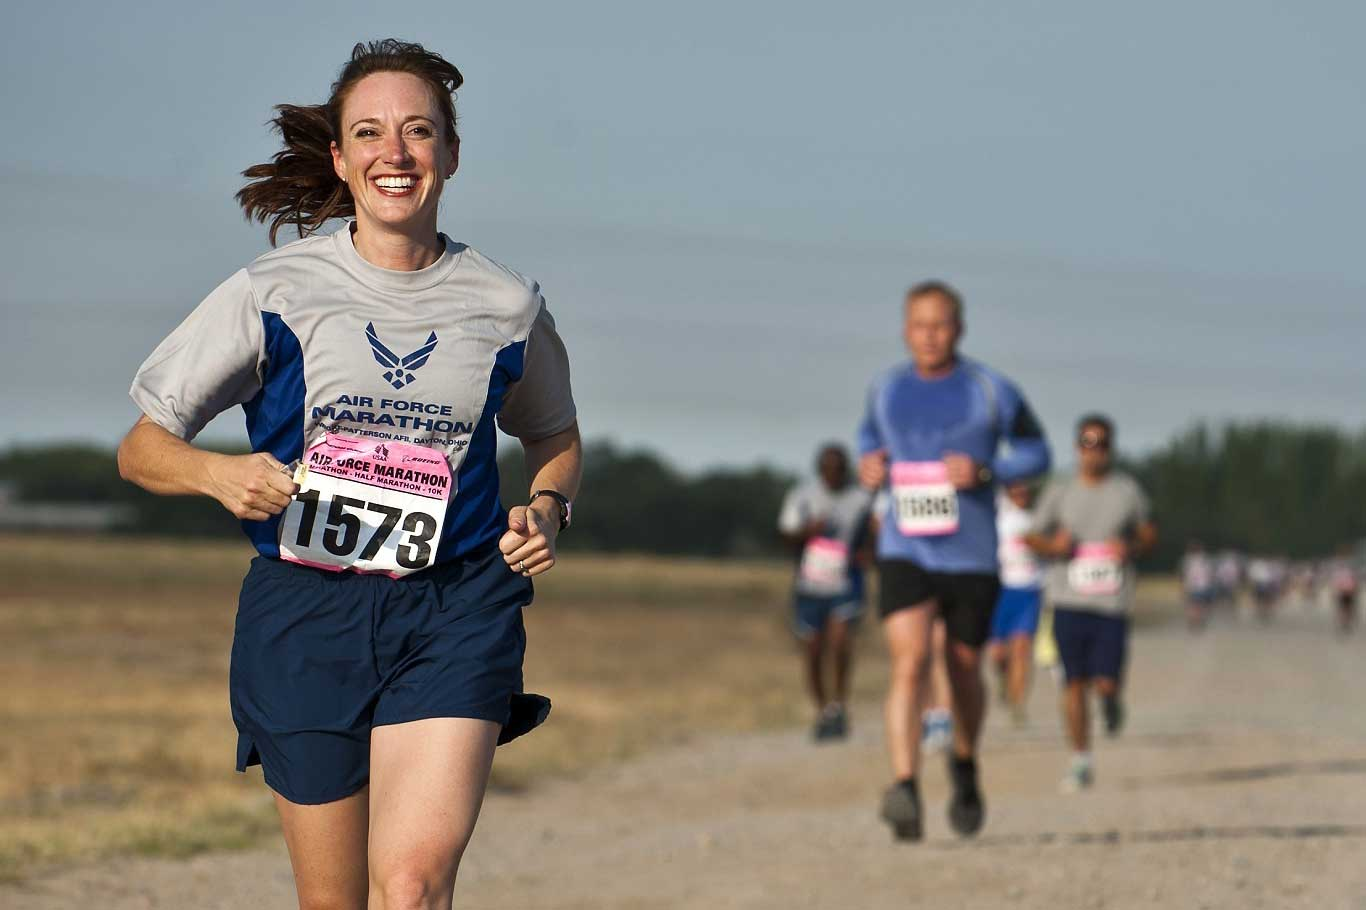 Female running in a marathon